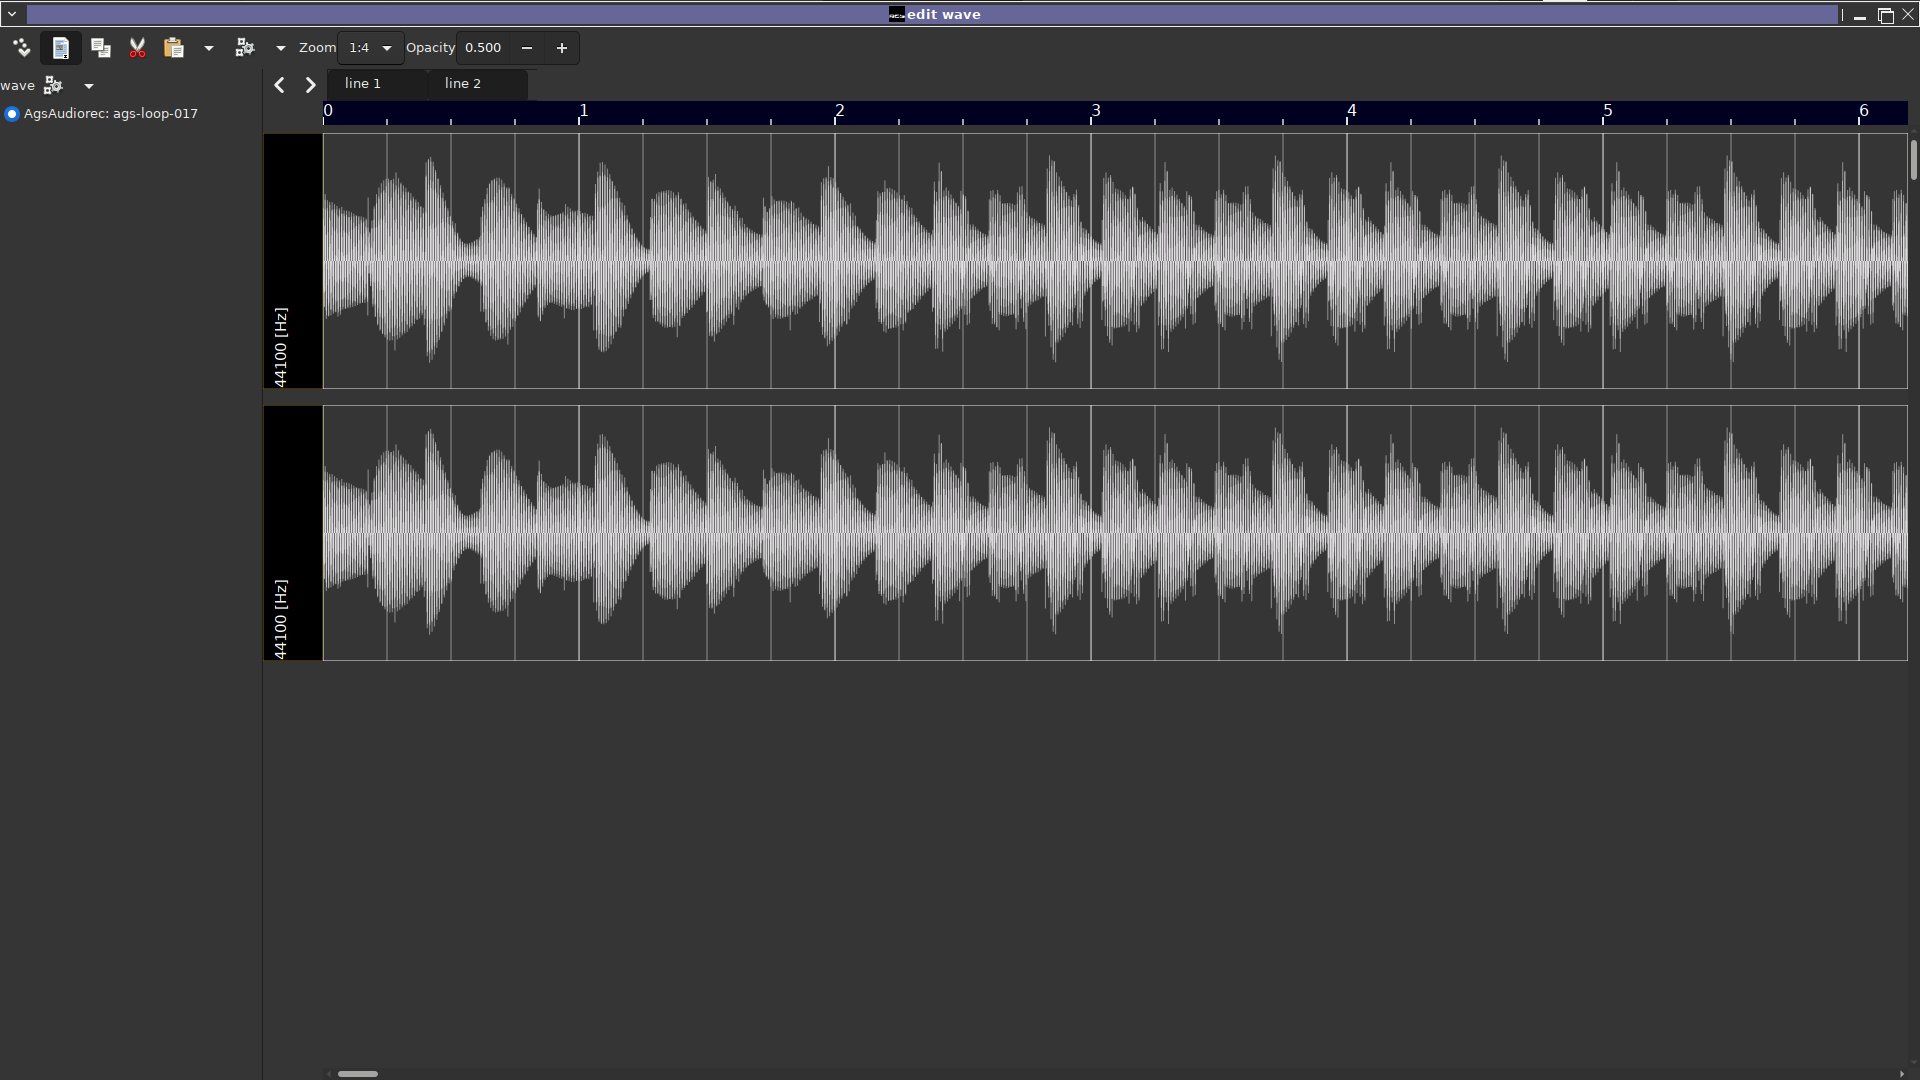 Gsequencer-wave-audiorec.png